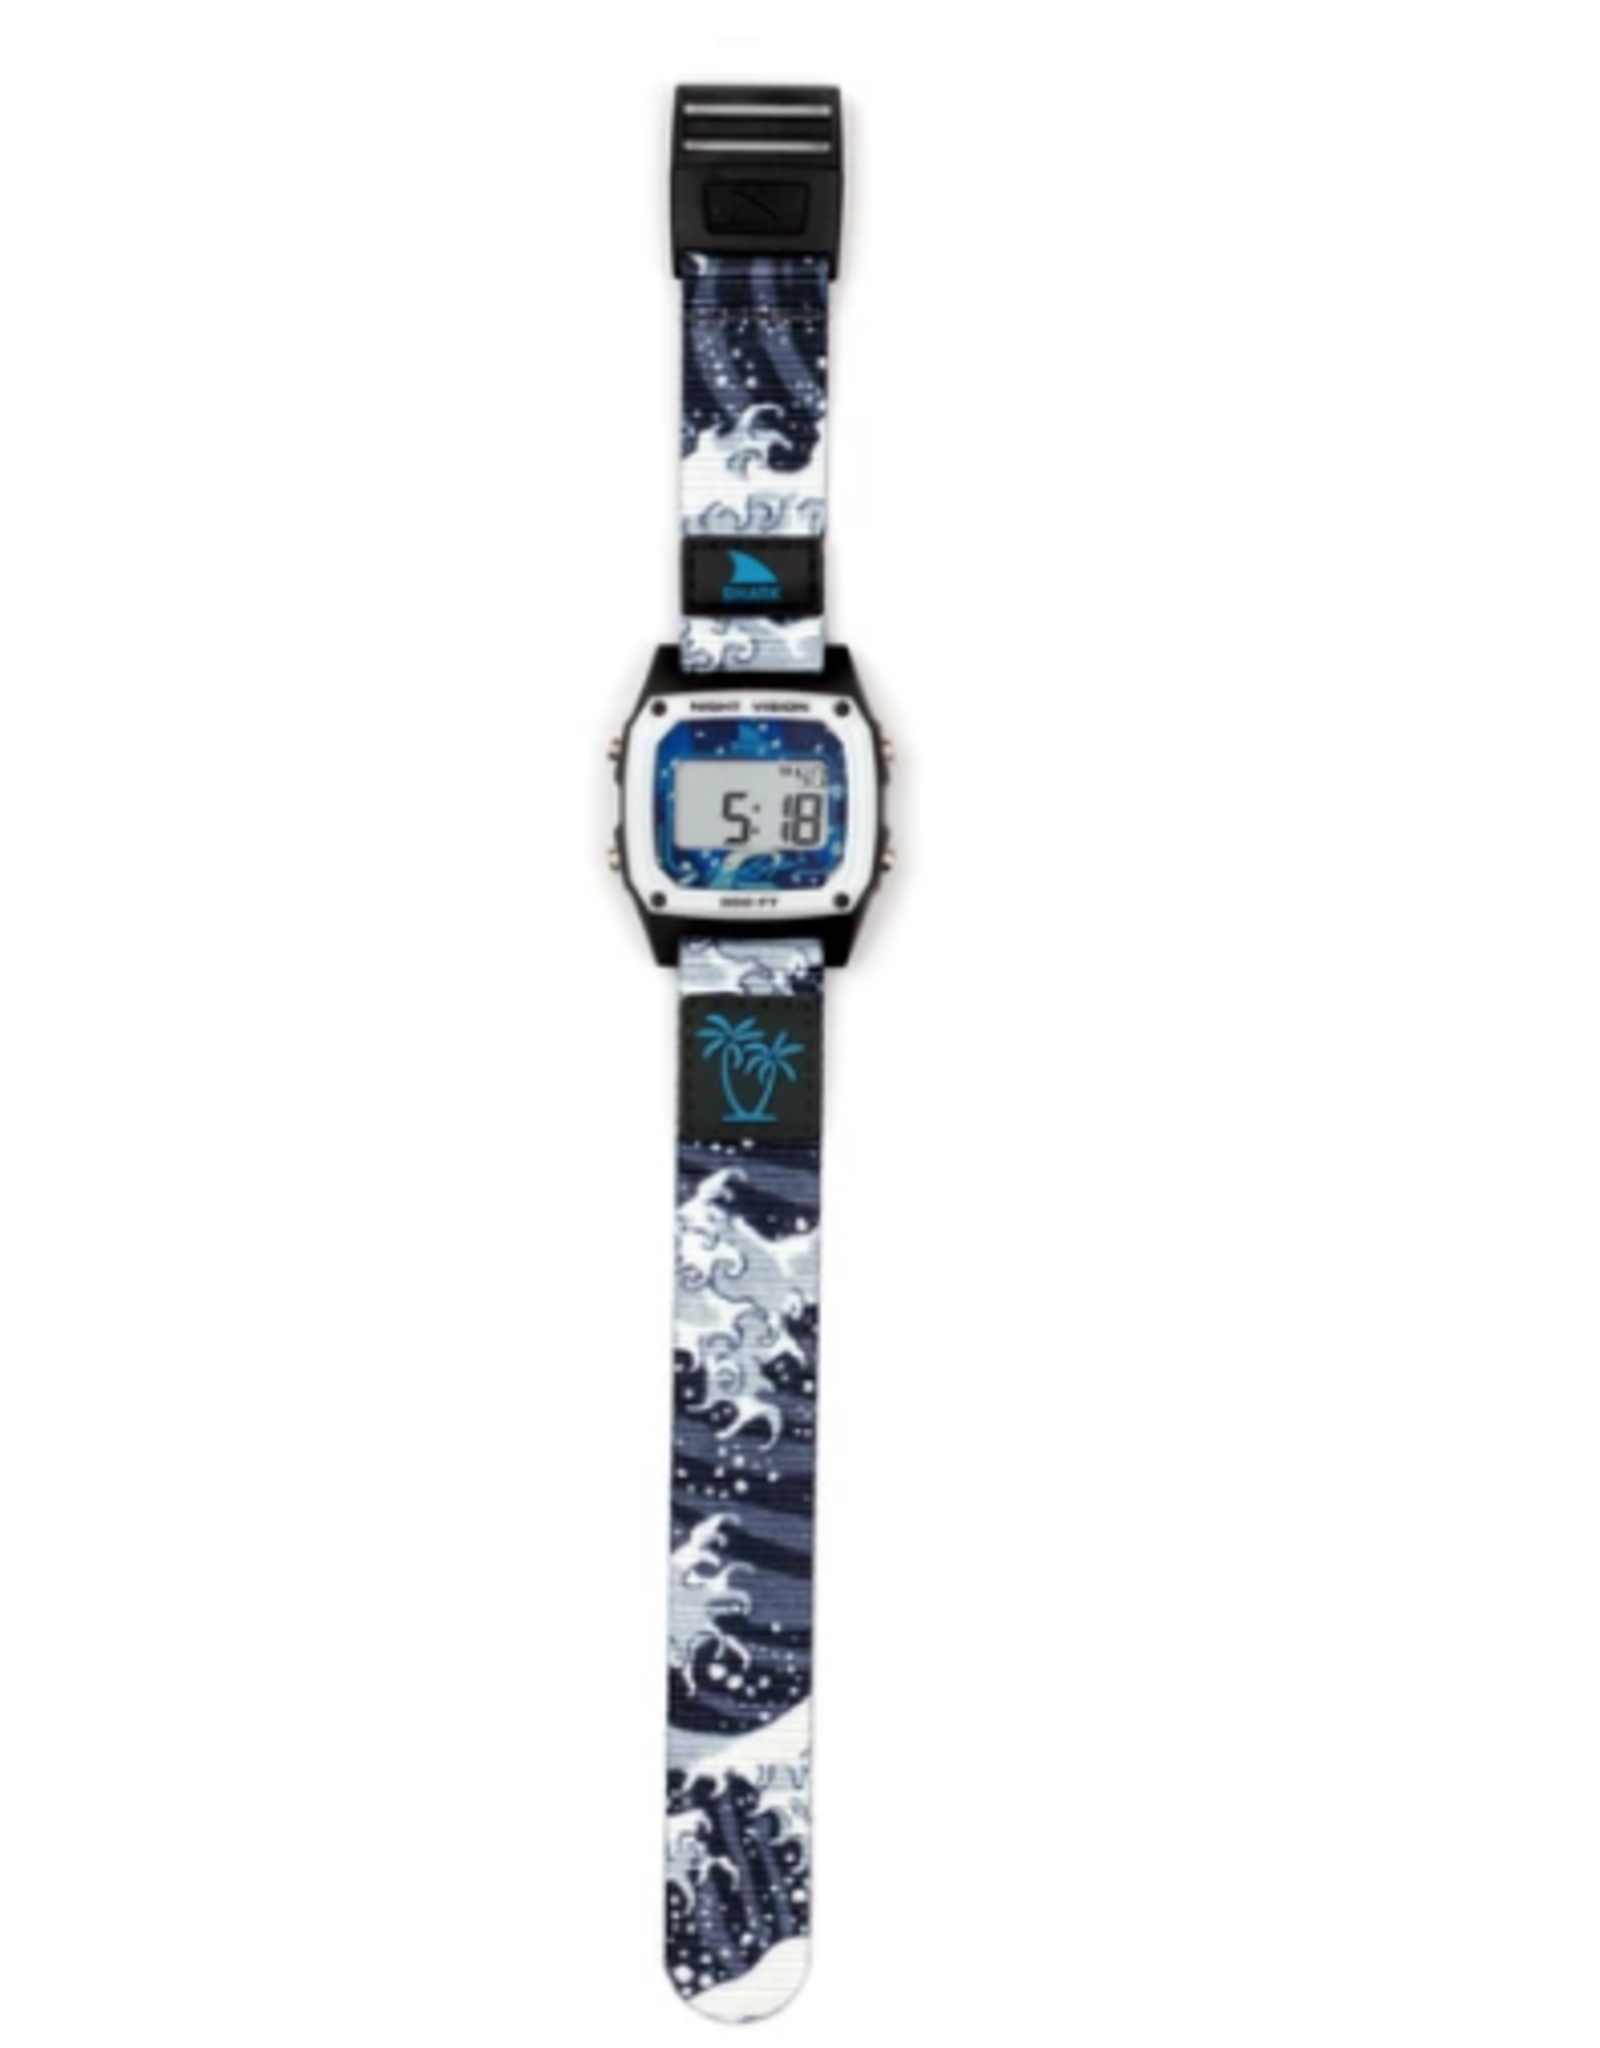 FREESTYLE FREESTYLE SHARK CLASSIC CLIP LUKE DAVIS SIGNATURE WHITE WAVE WATCH